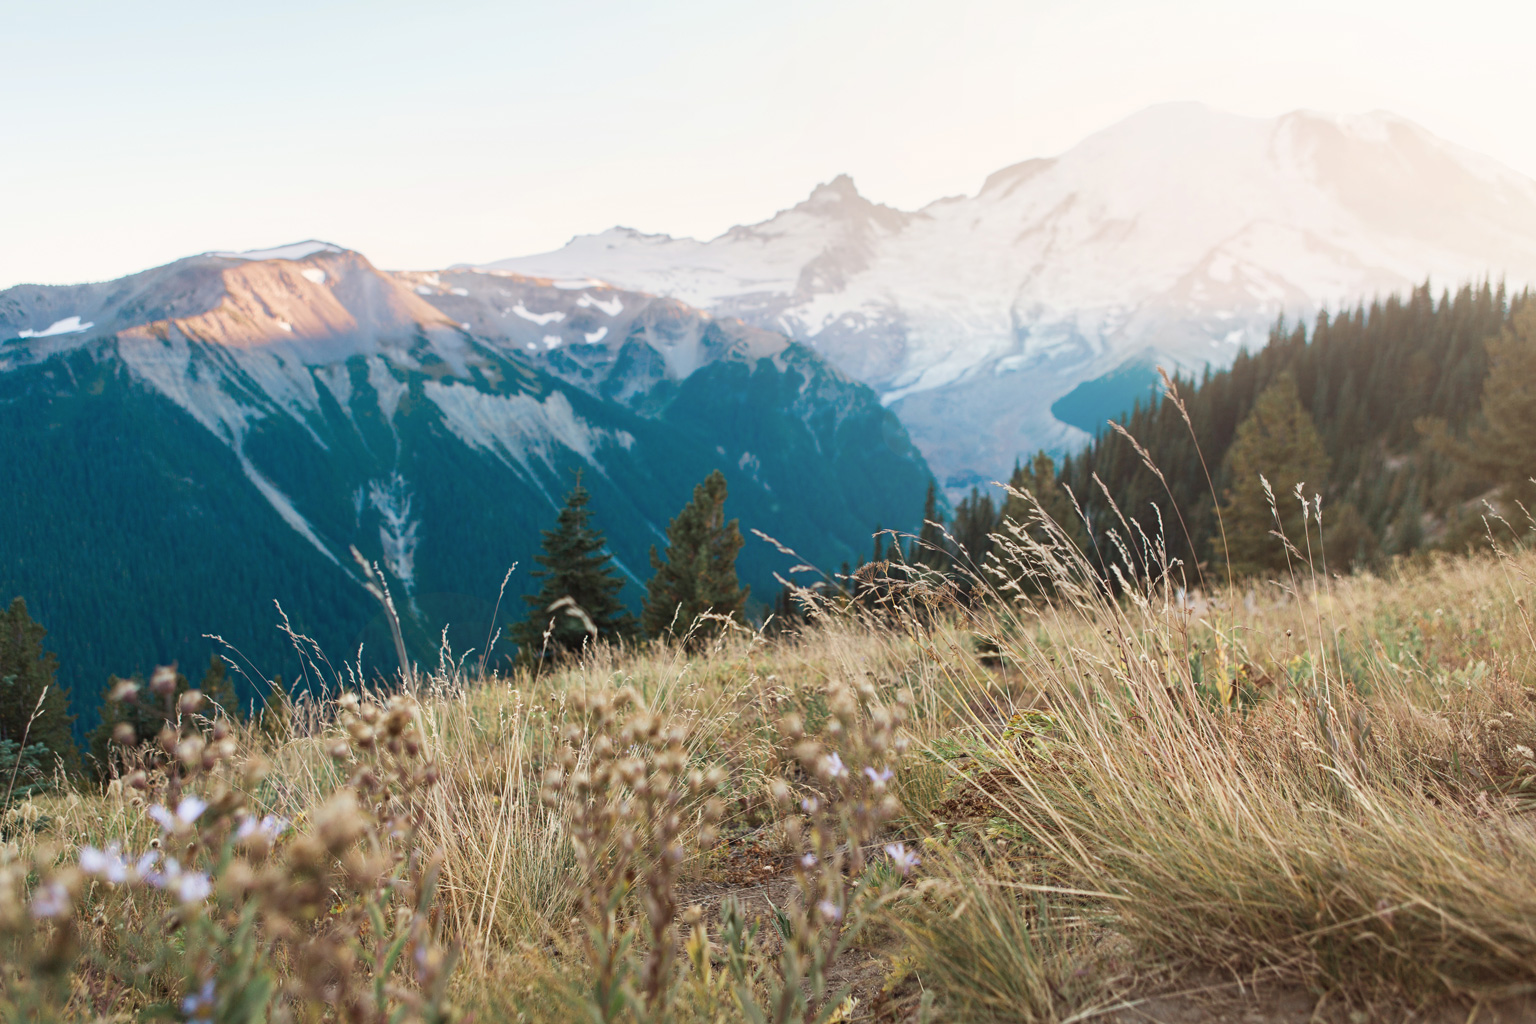 CindyGiovagnoli_Mount_Rainier_National_Park_Washington-006.jpg